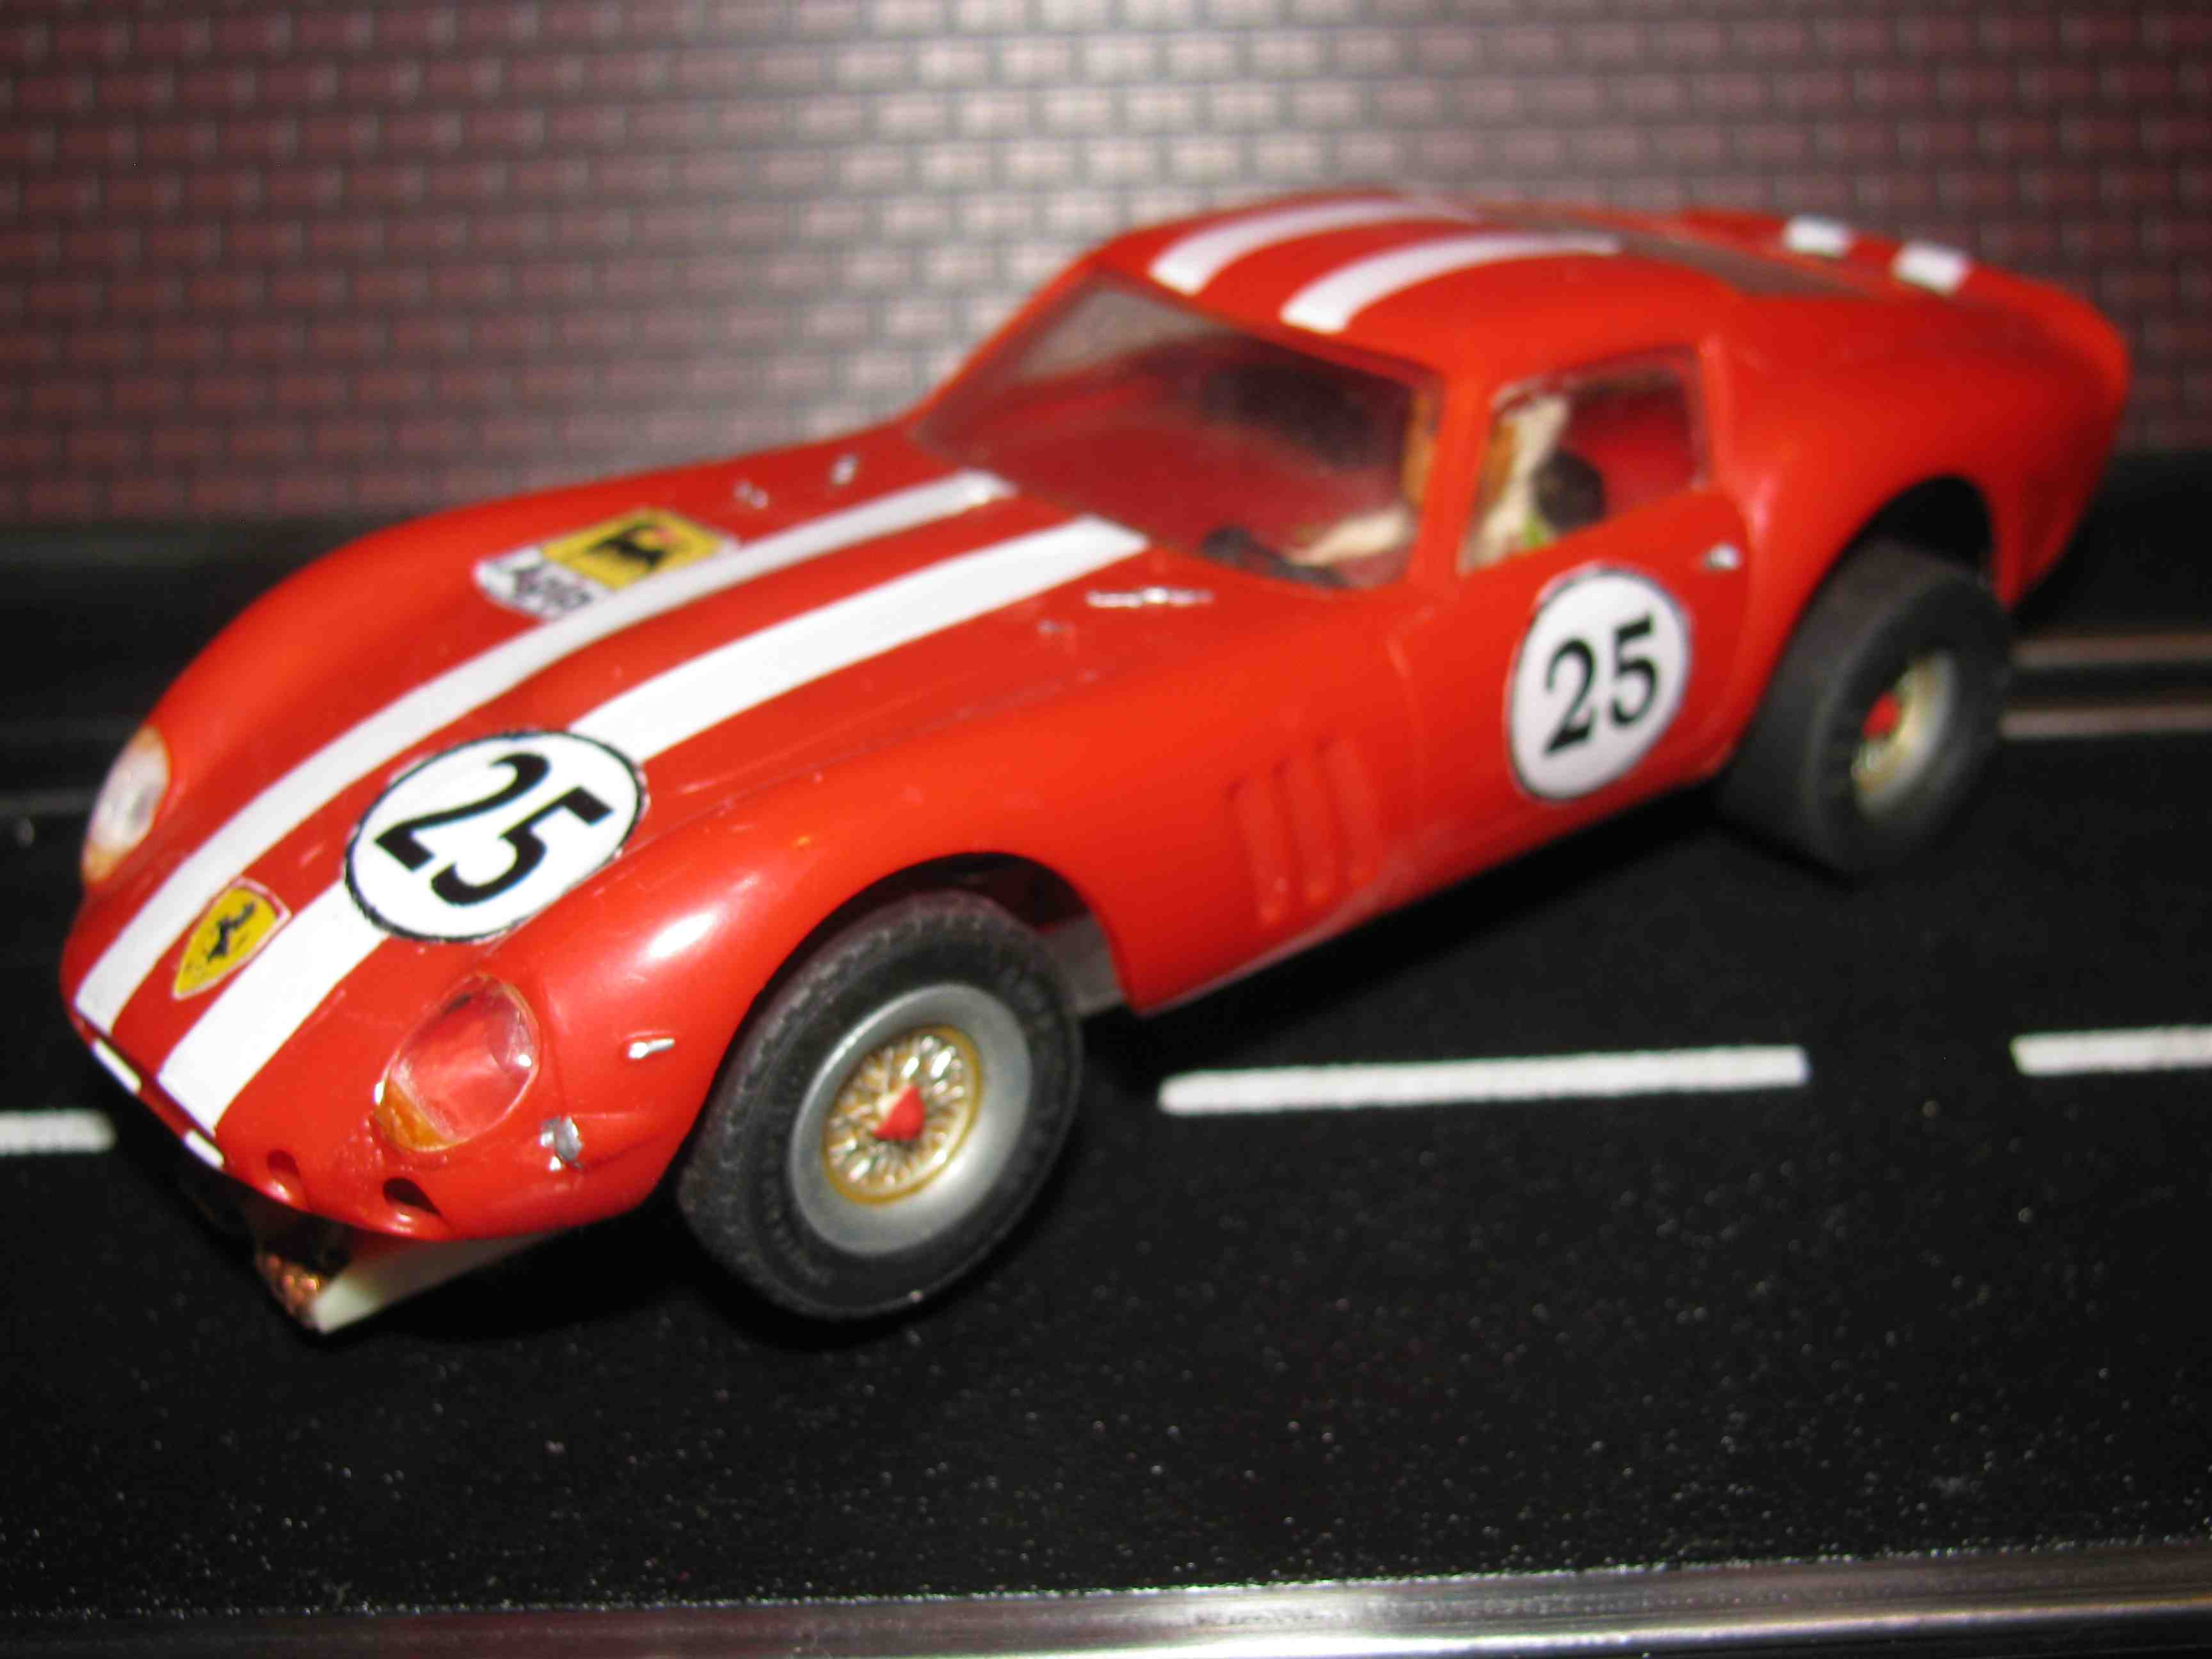 * SOLD * Revell 1962 Ferrari 250 GTO Slot Car 1/32 Scale, Red, Car 25